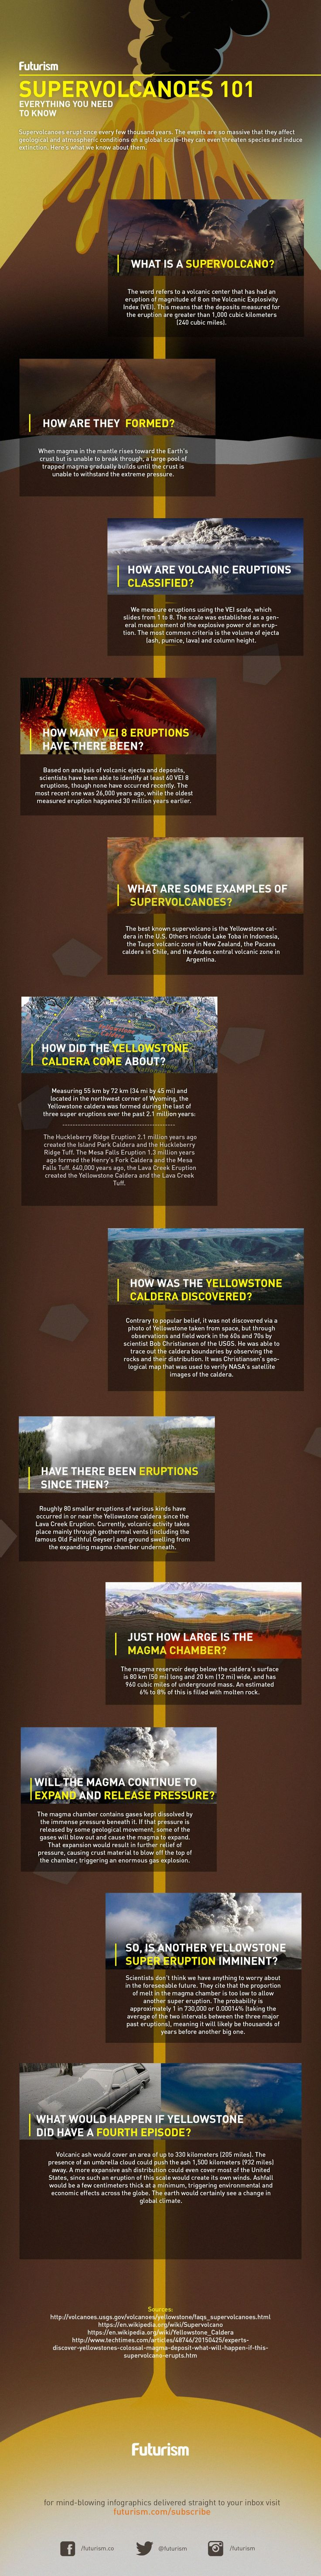 Natural Disasters: The Science of Supervolcanoes